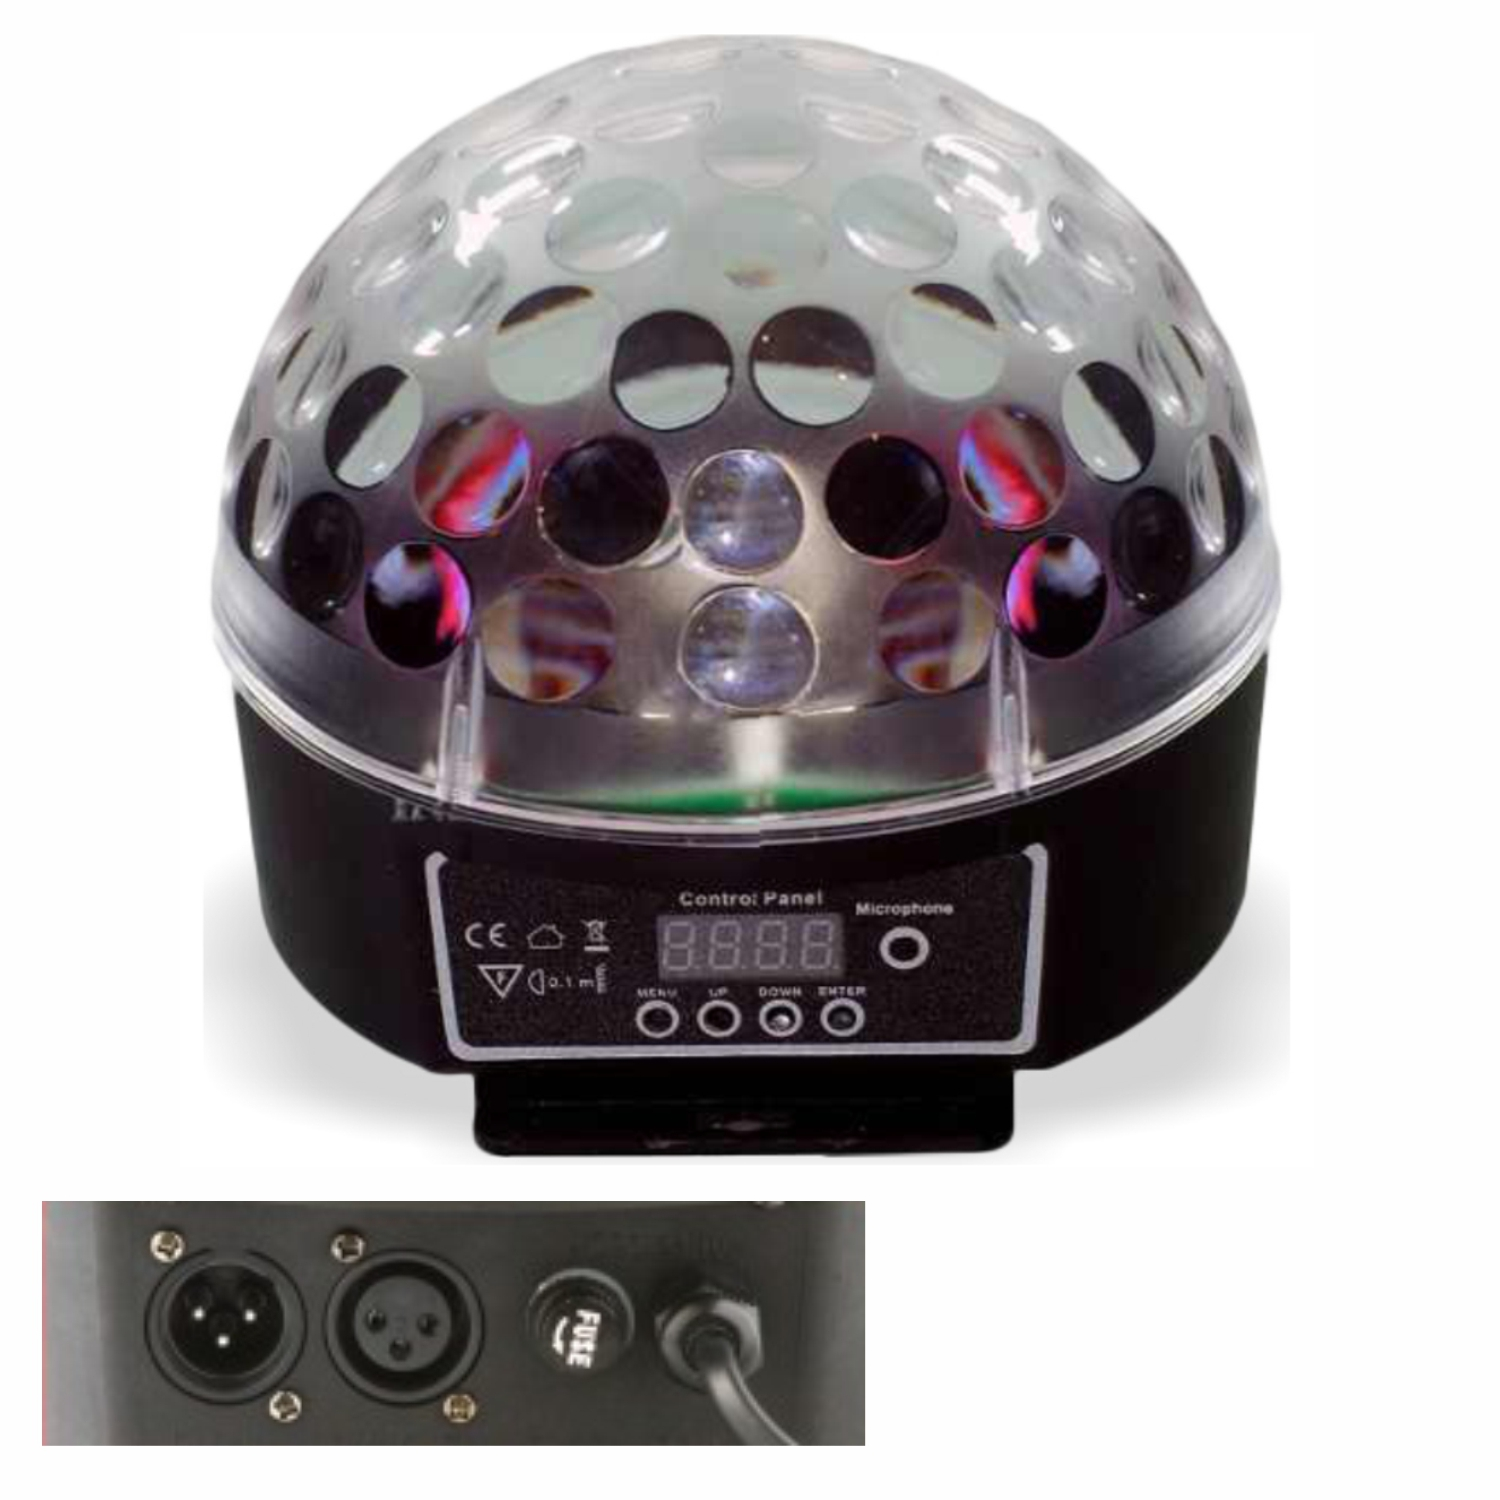 Bola Maluca LED Magic Ball DMX 6 Cores Painel Digital 30 Watts